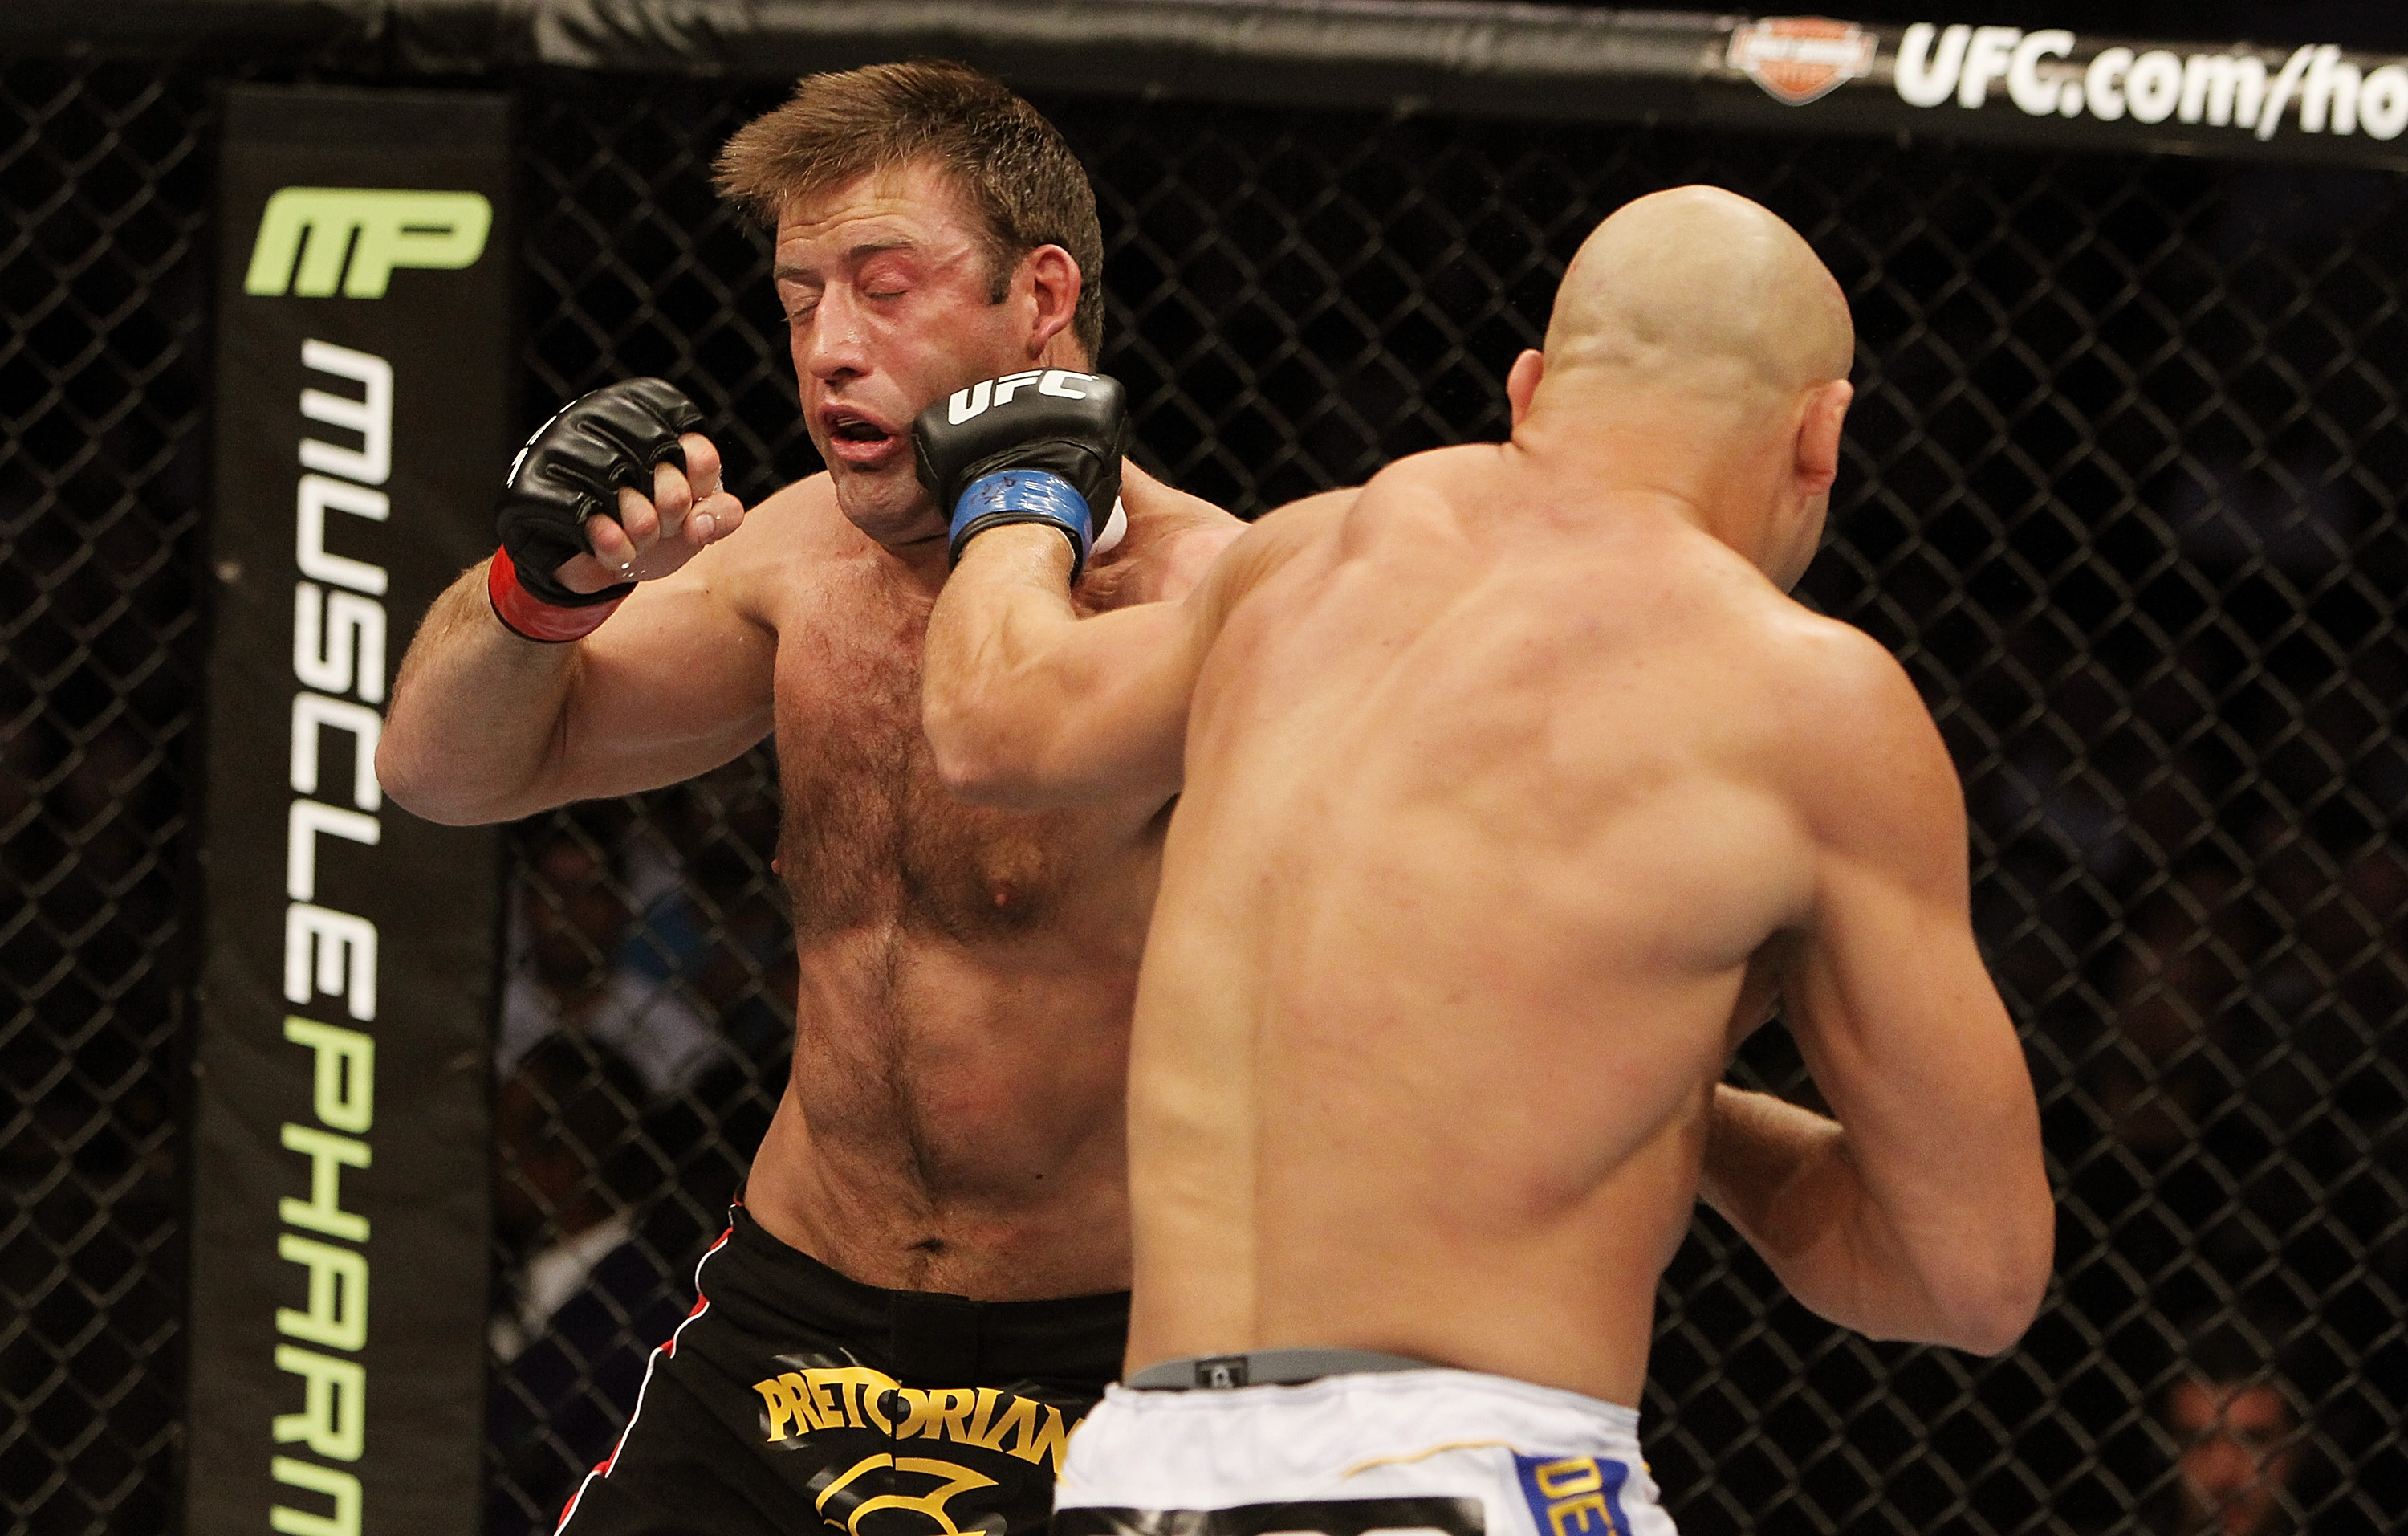 SAN JOSE, CA - NOVEMBER 19: (R-L) Kyle Kingsbury punches Stephan Bonnar during an UFC Light Heavywieght bout at the HP Pavilion on November 19, 2011 in San Jose, California.  (Photo by Josh Hedges/Zuffa LLC/Zuffa LLC via Getty Images)